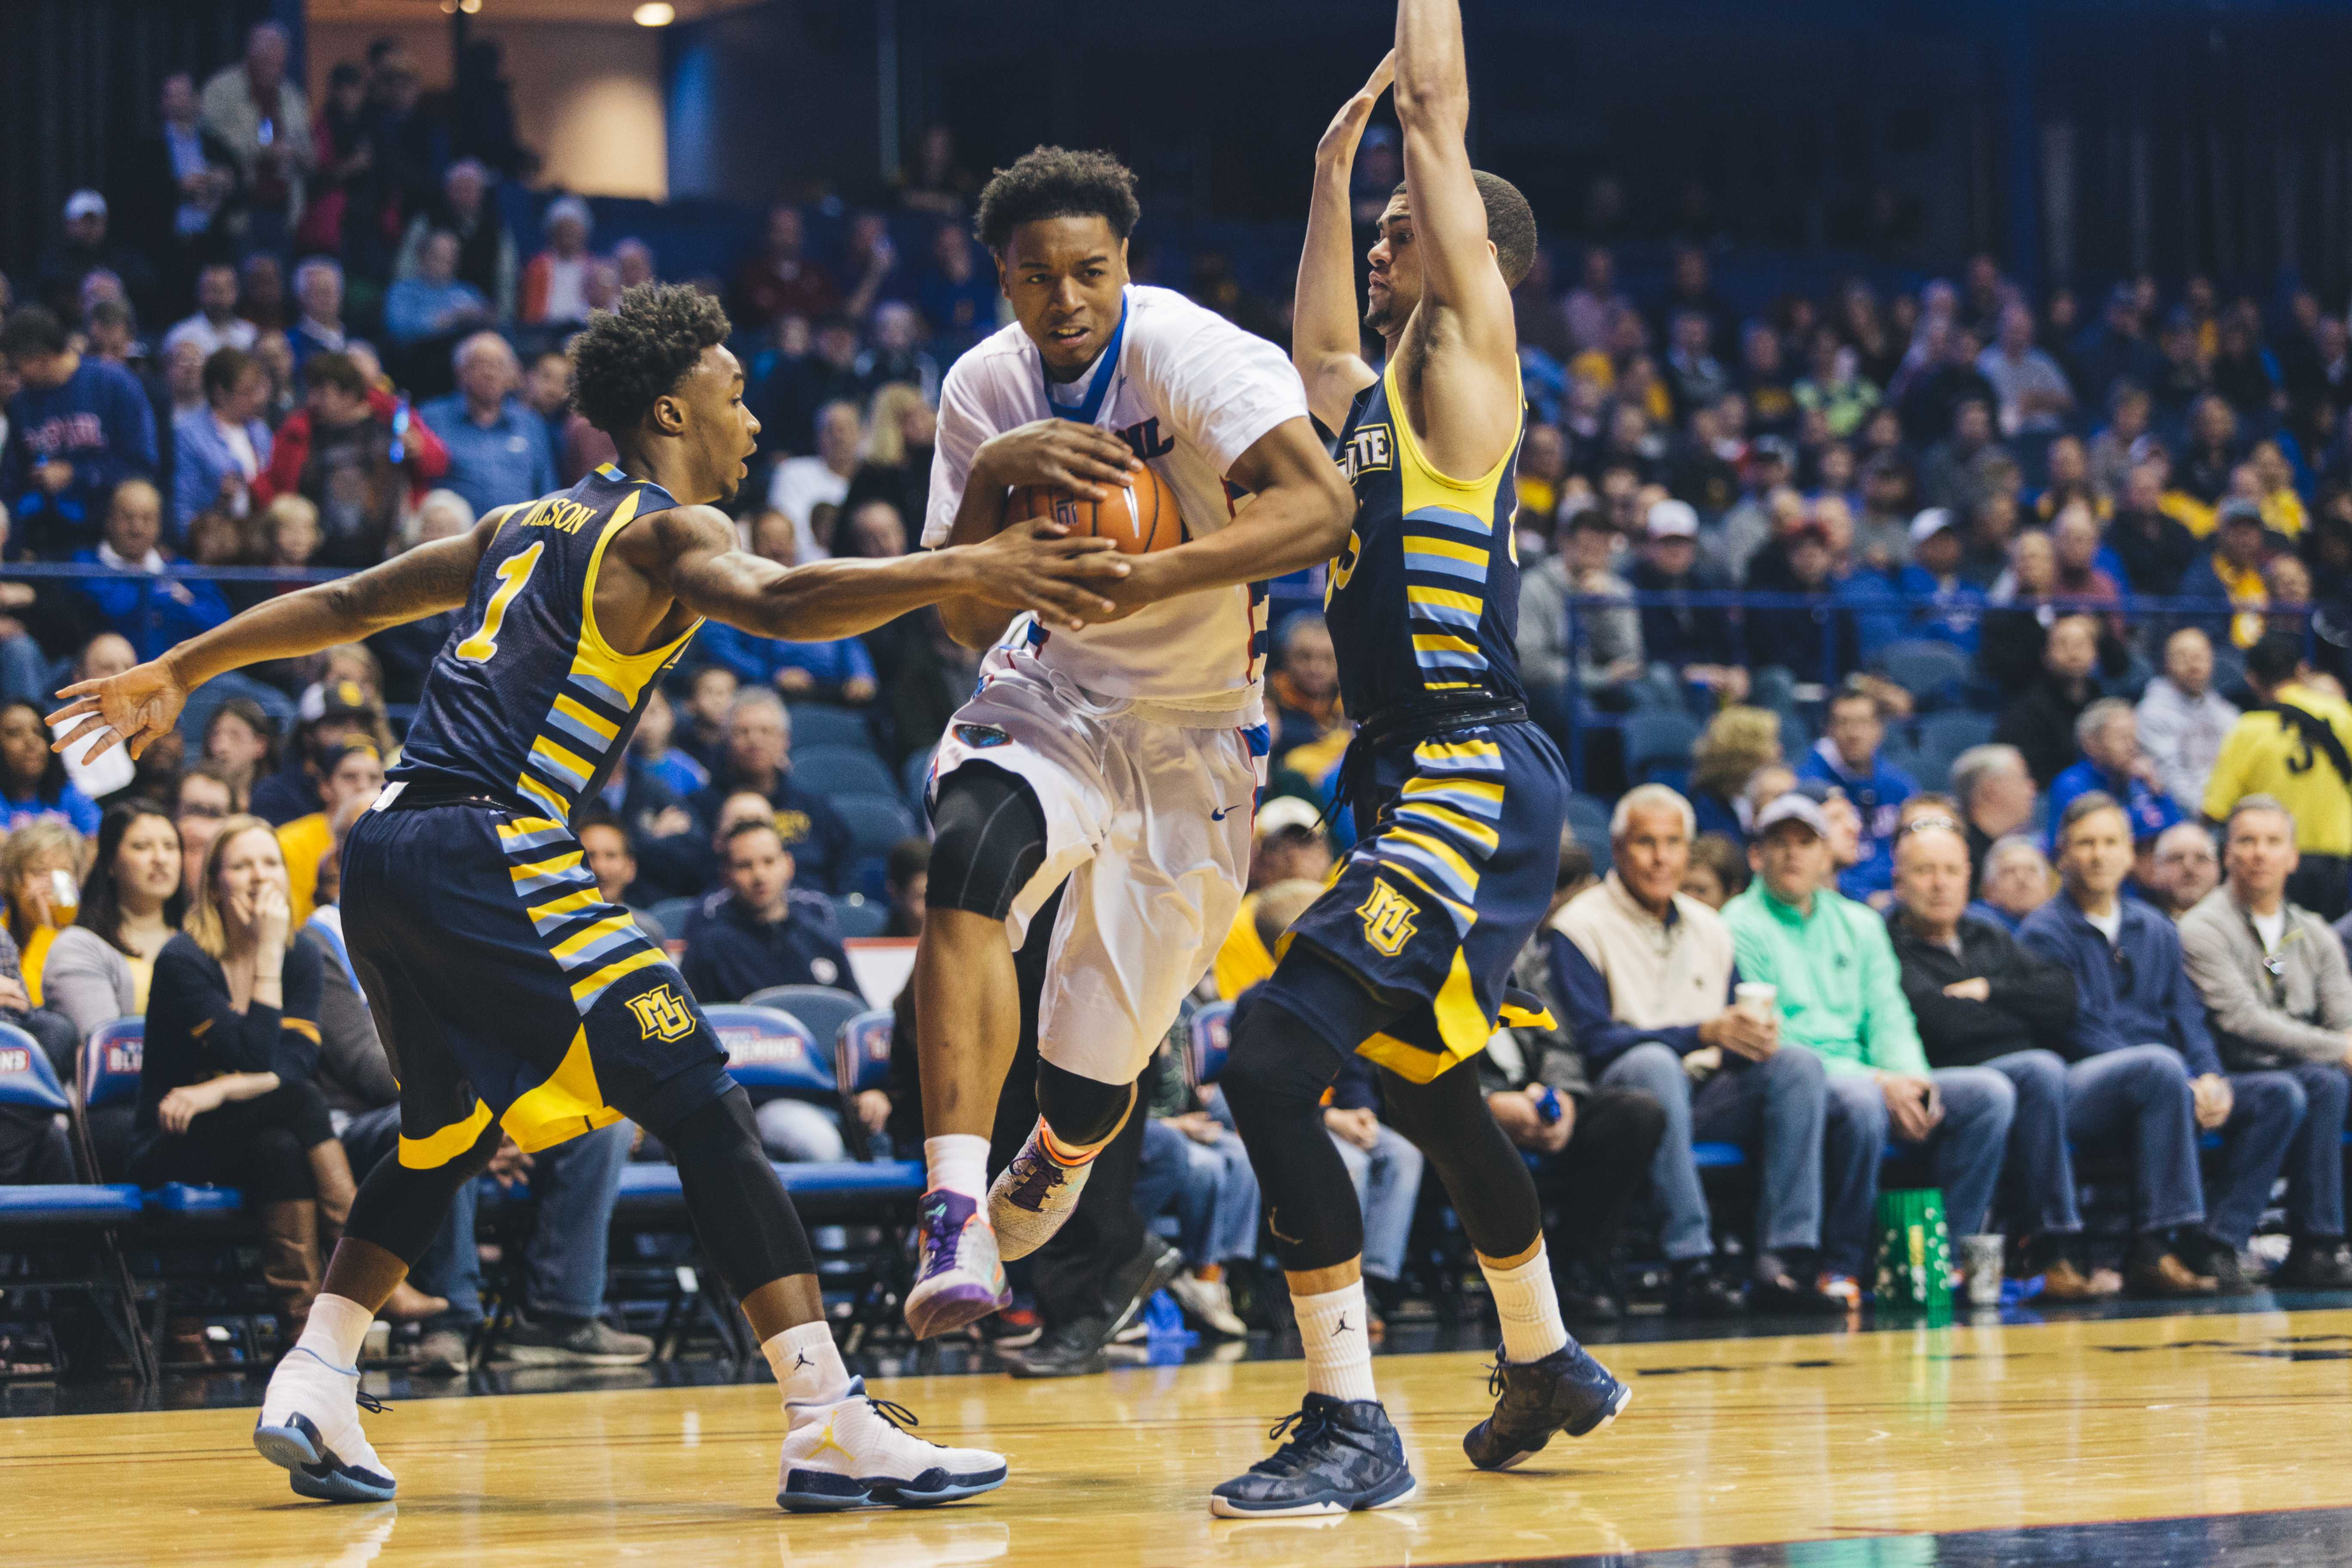 DePaul sophomore guard Eli Cain drives the ball through Marquette's defense last season. (Photo by Josh Leff / The DePaulia)